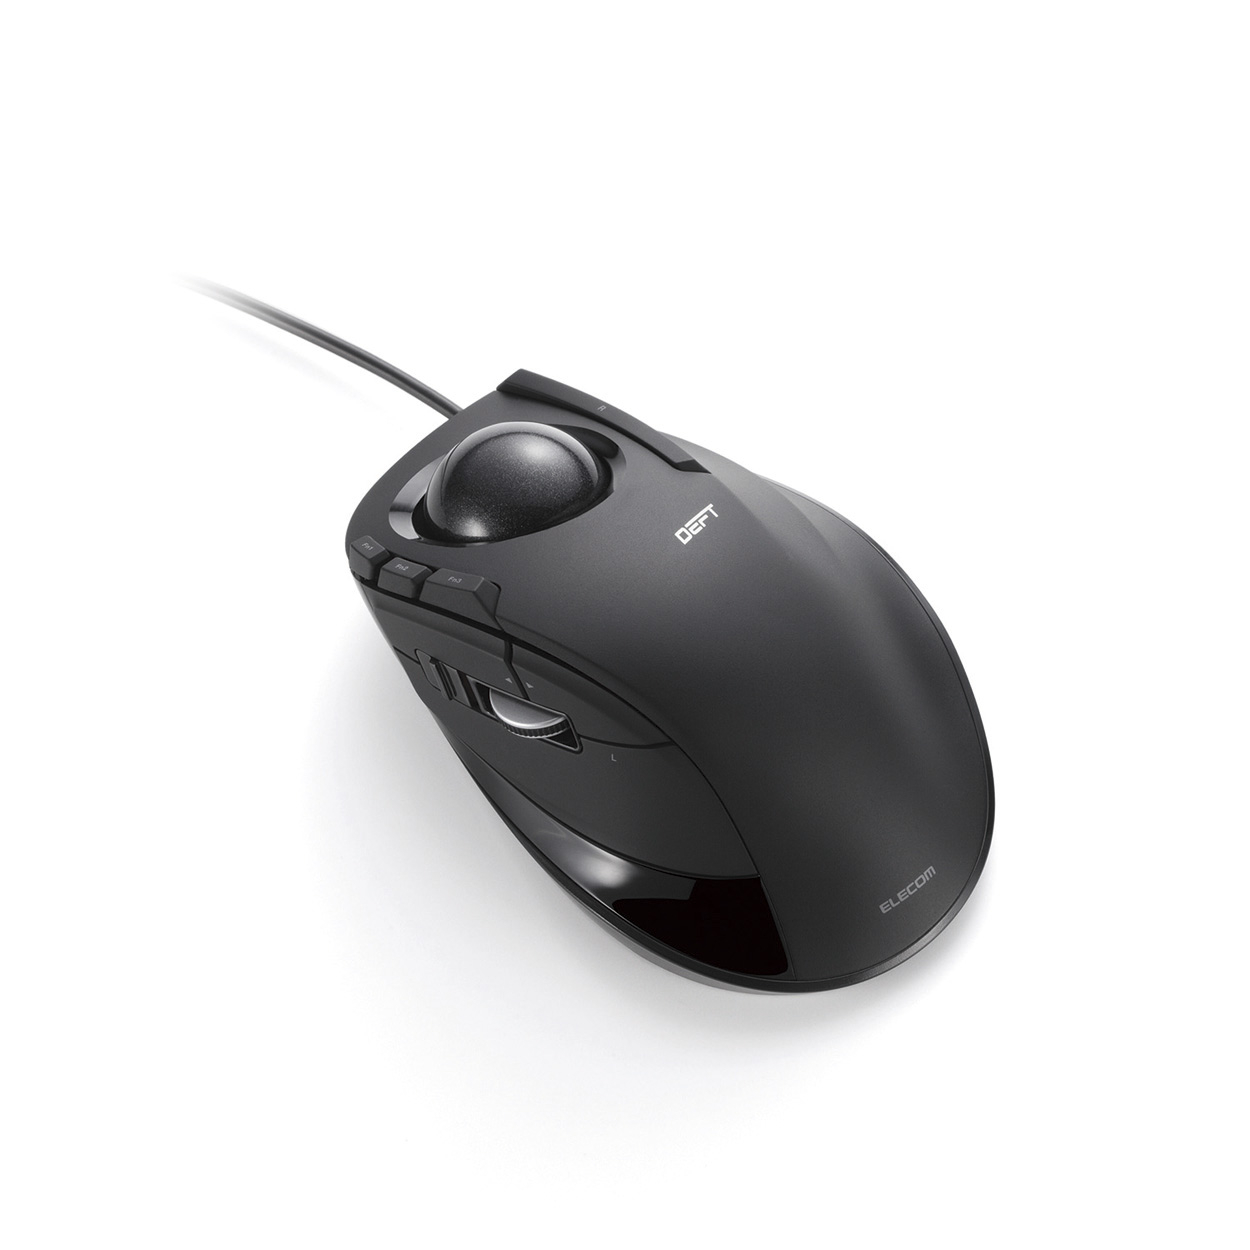 elecom, mouse, pc products, m-eg30, egg mouse, m-ir07drs, infrared, bluetooth, trackball, m-dt1urbk, m-xgm10dbbk, wireless, mp-115bk, fittio, mouse pad